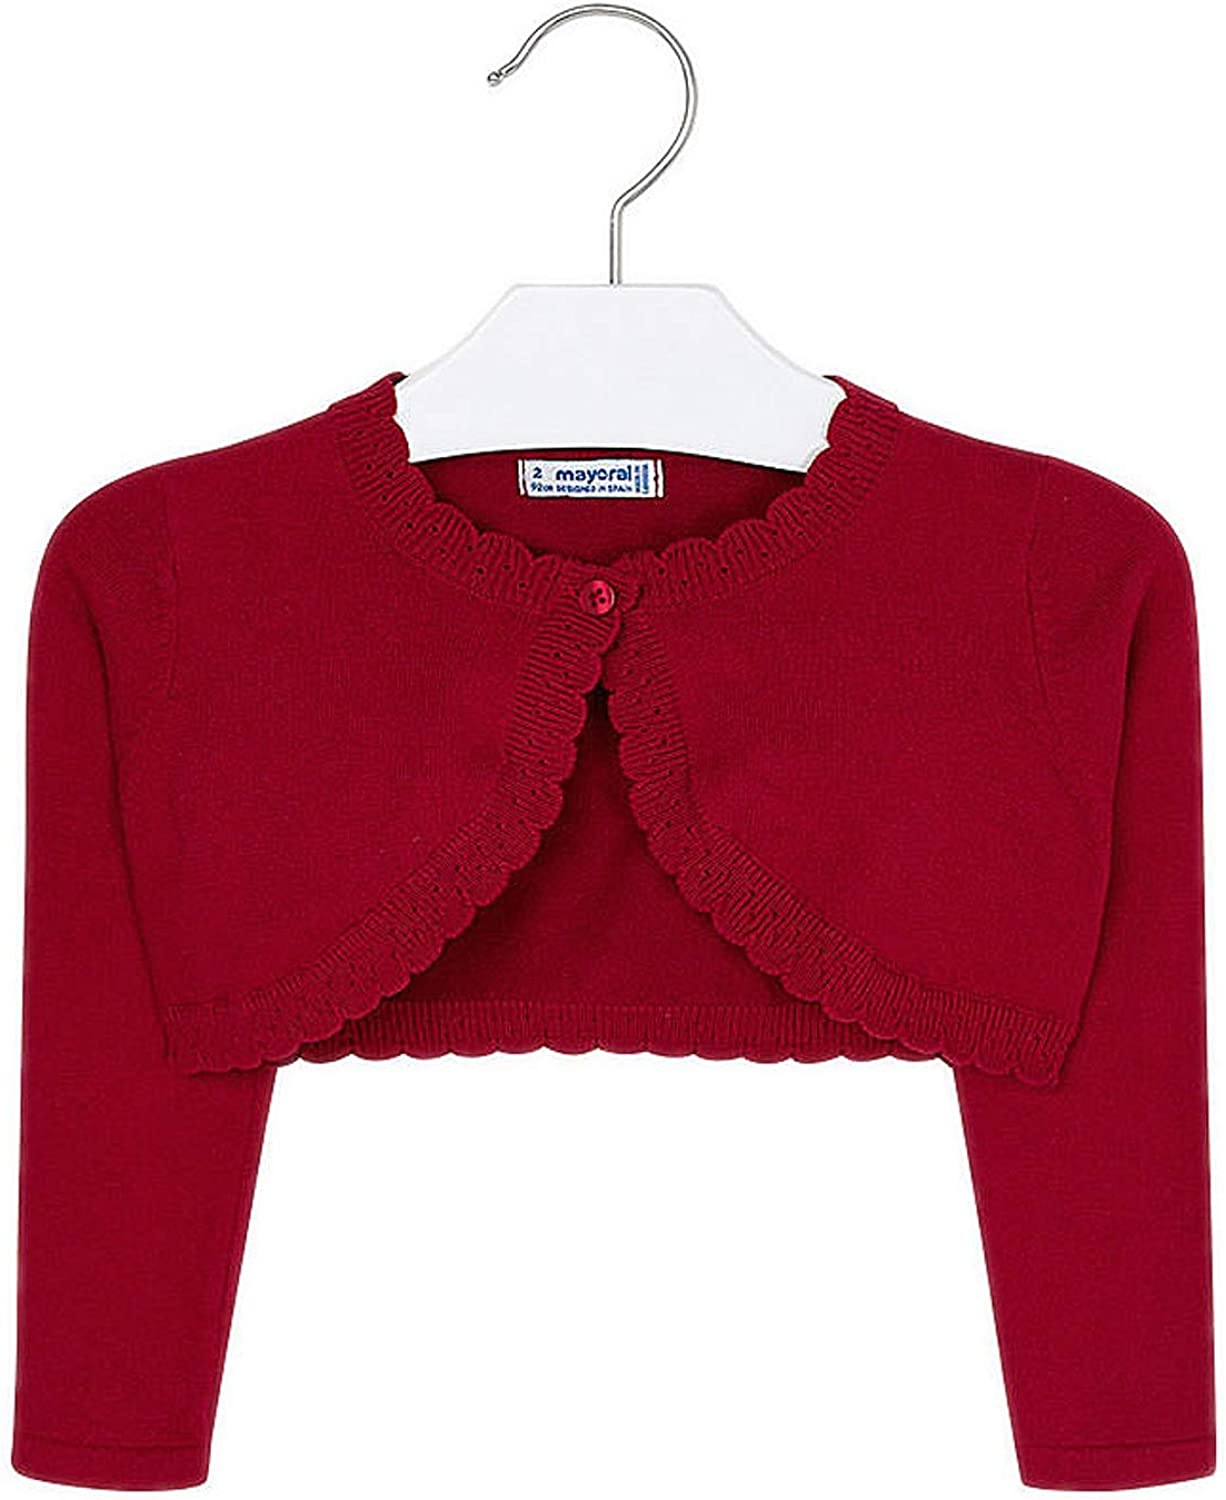 Mayoral - Basic Knitted Cardigan for Girls - 0314, Red